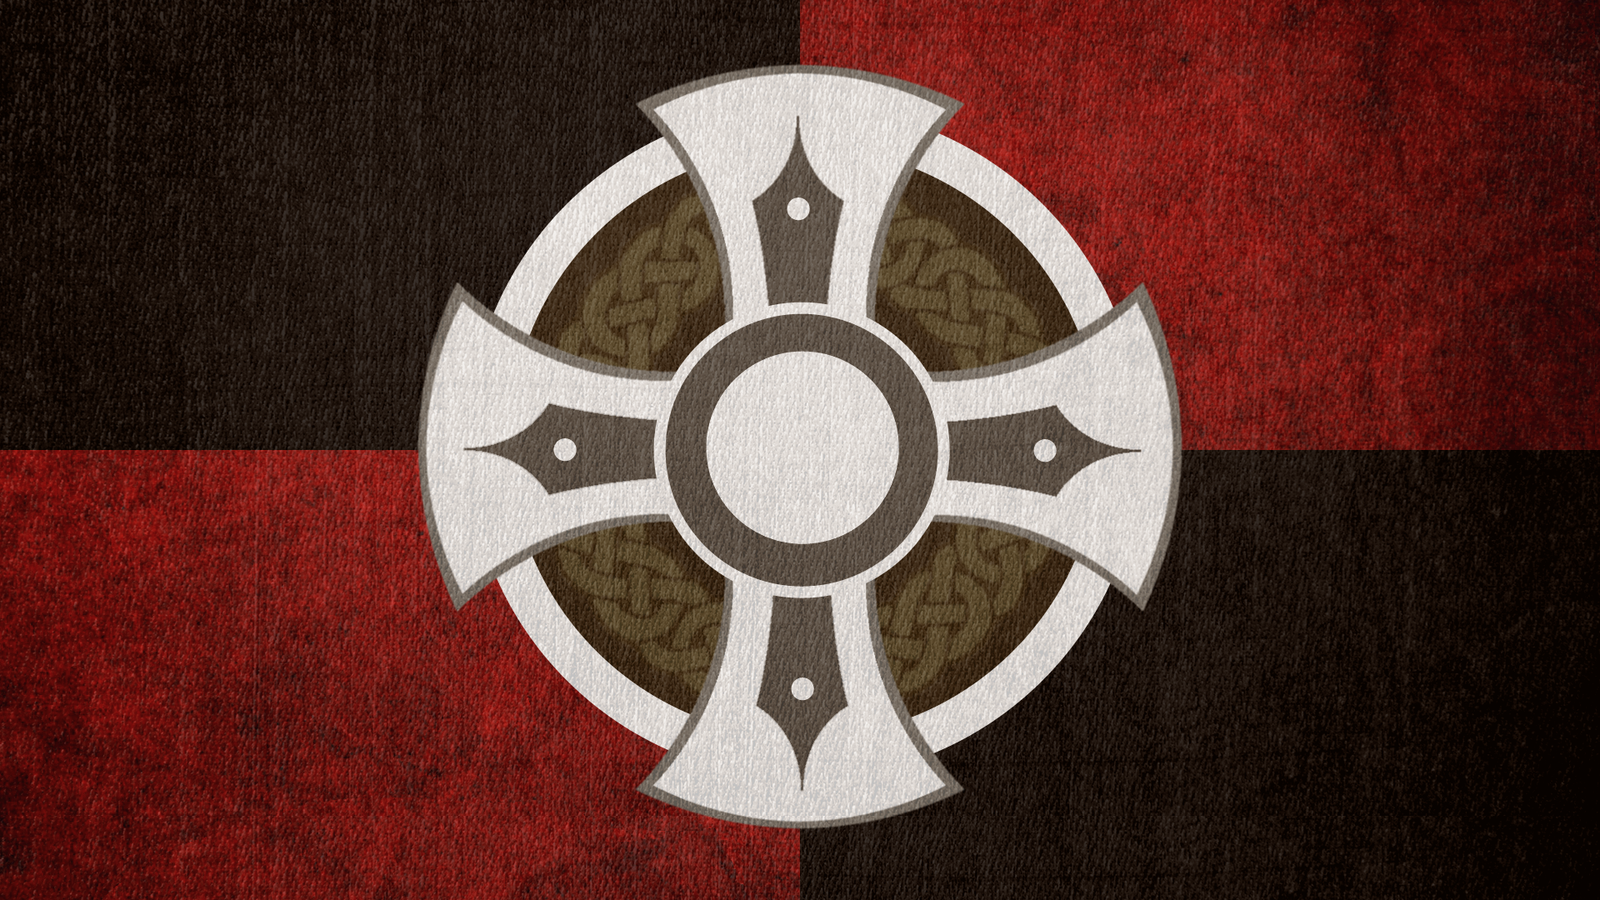 The Elder Scrolls: Banner of the Skald-King by okiir